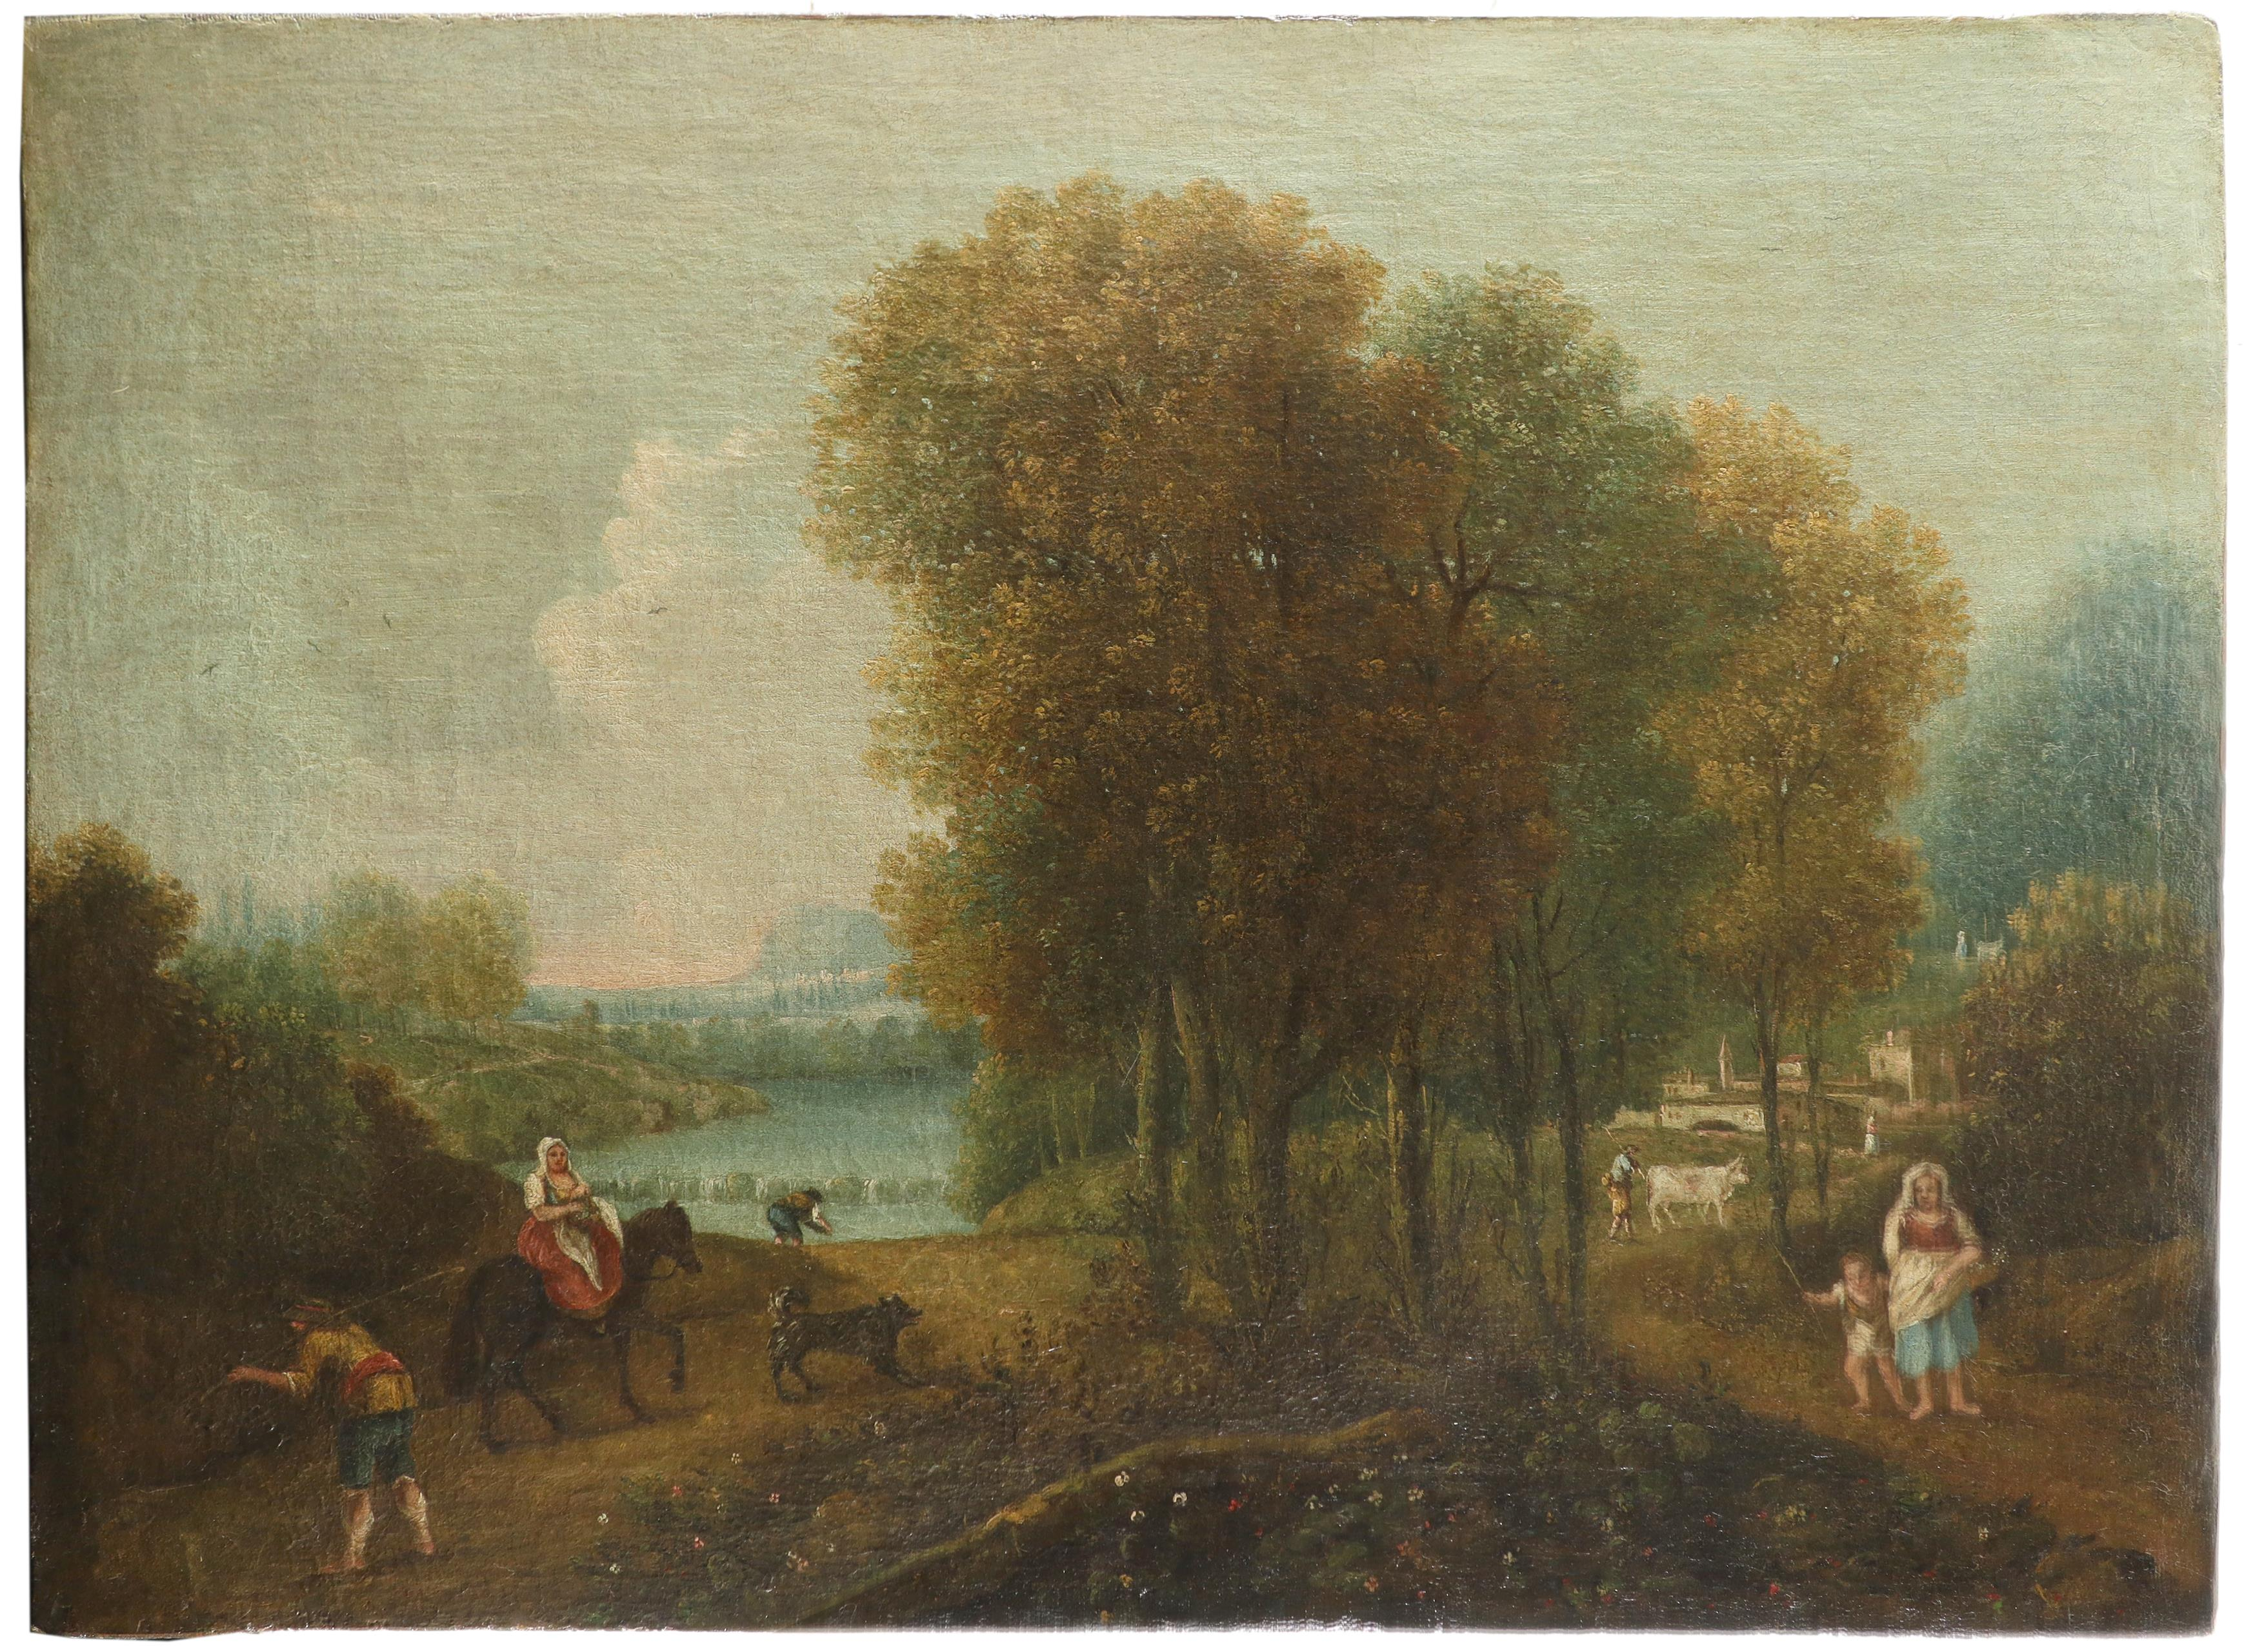 Italian School c.1800 Italianate wooded river landscape with figures and a town in the distance - Image 2 of 3